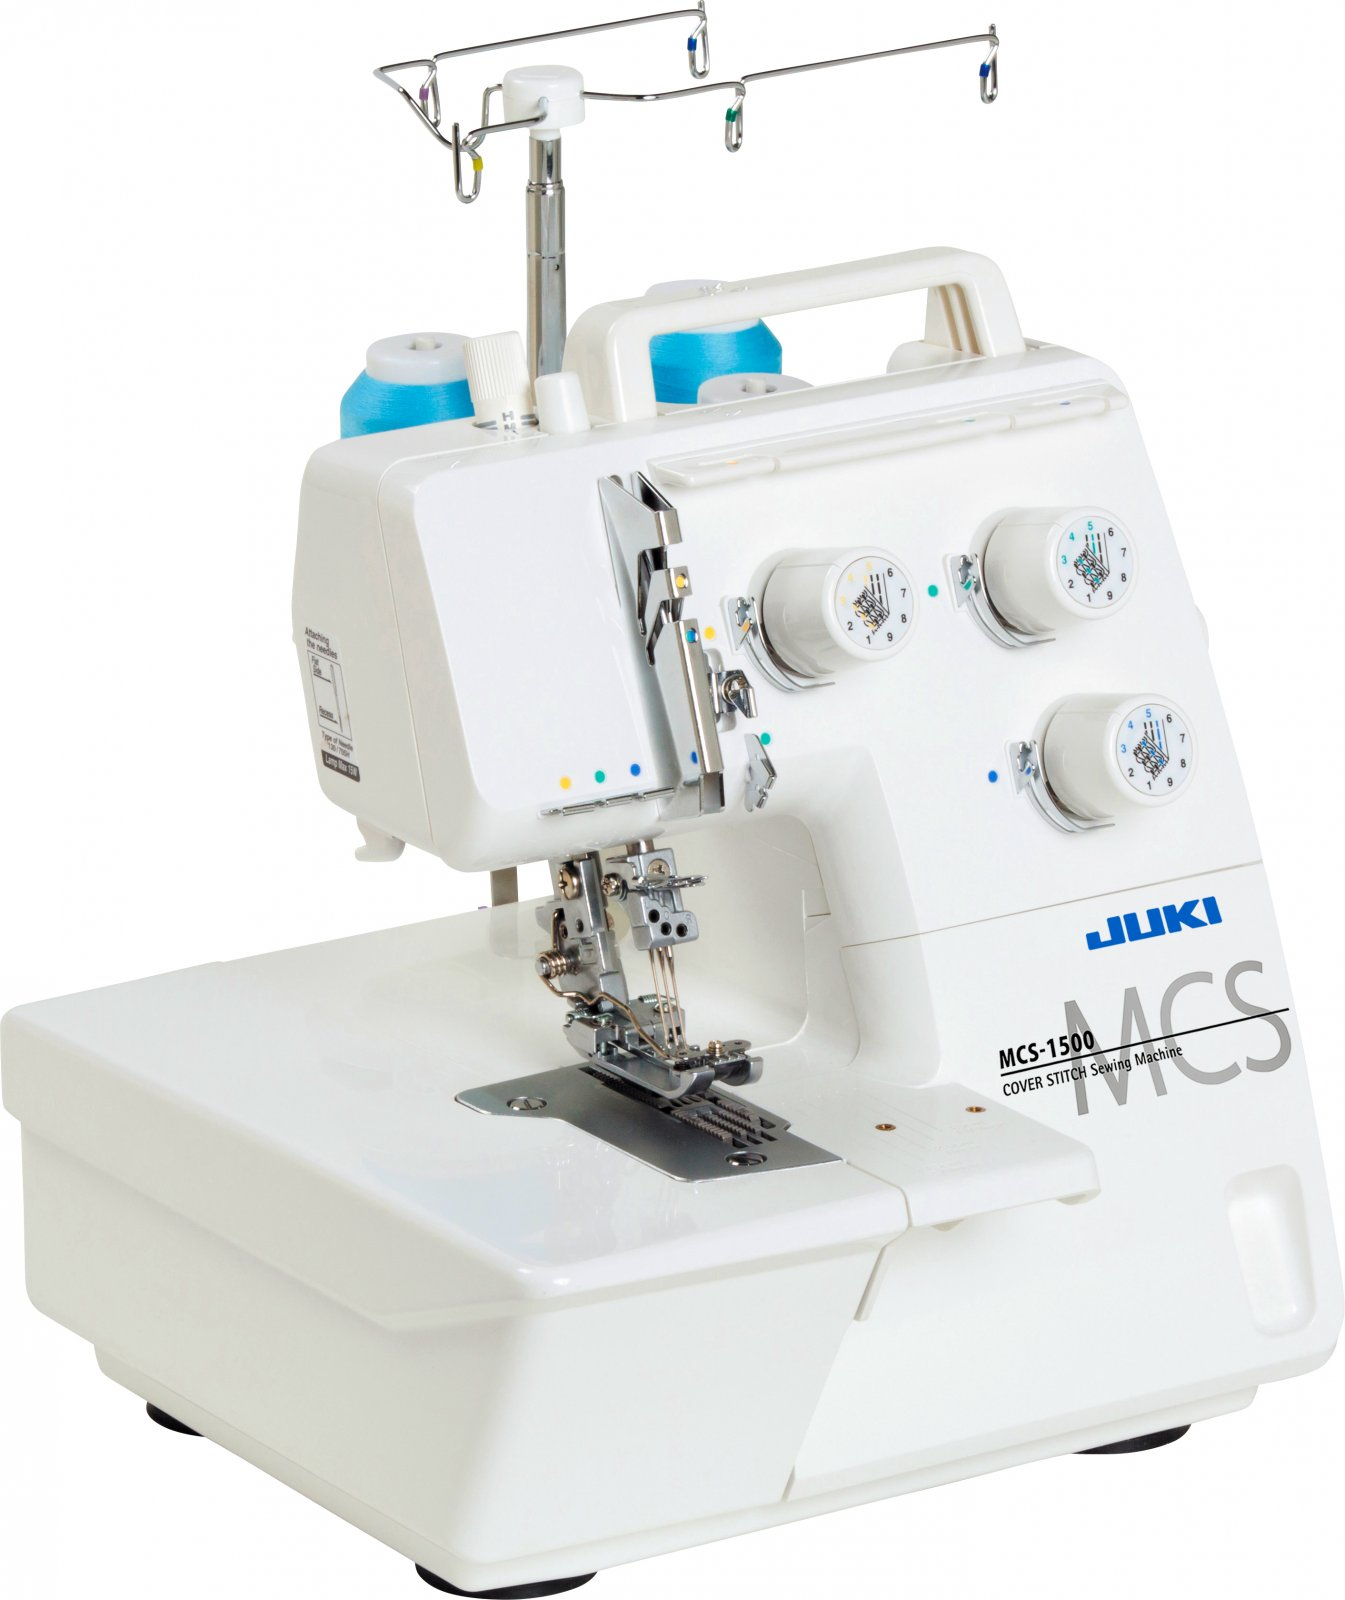 JUKI MCS-1500 Coverstitch & Chain Stitch Machine